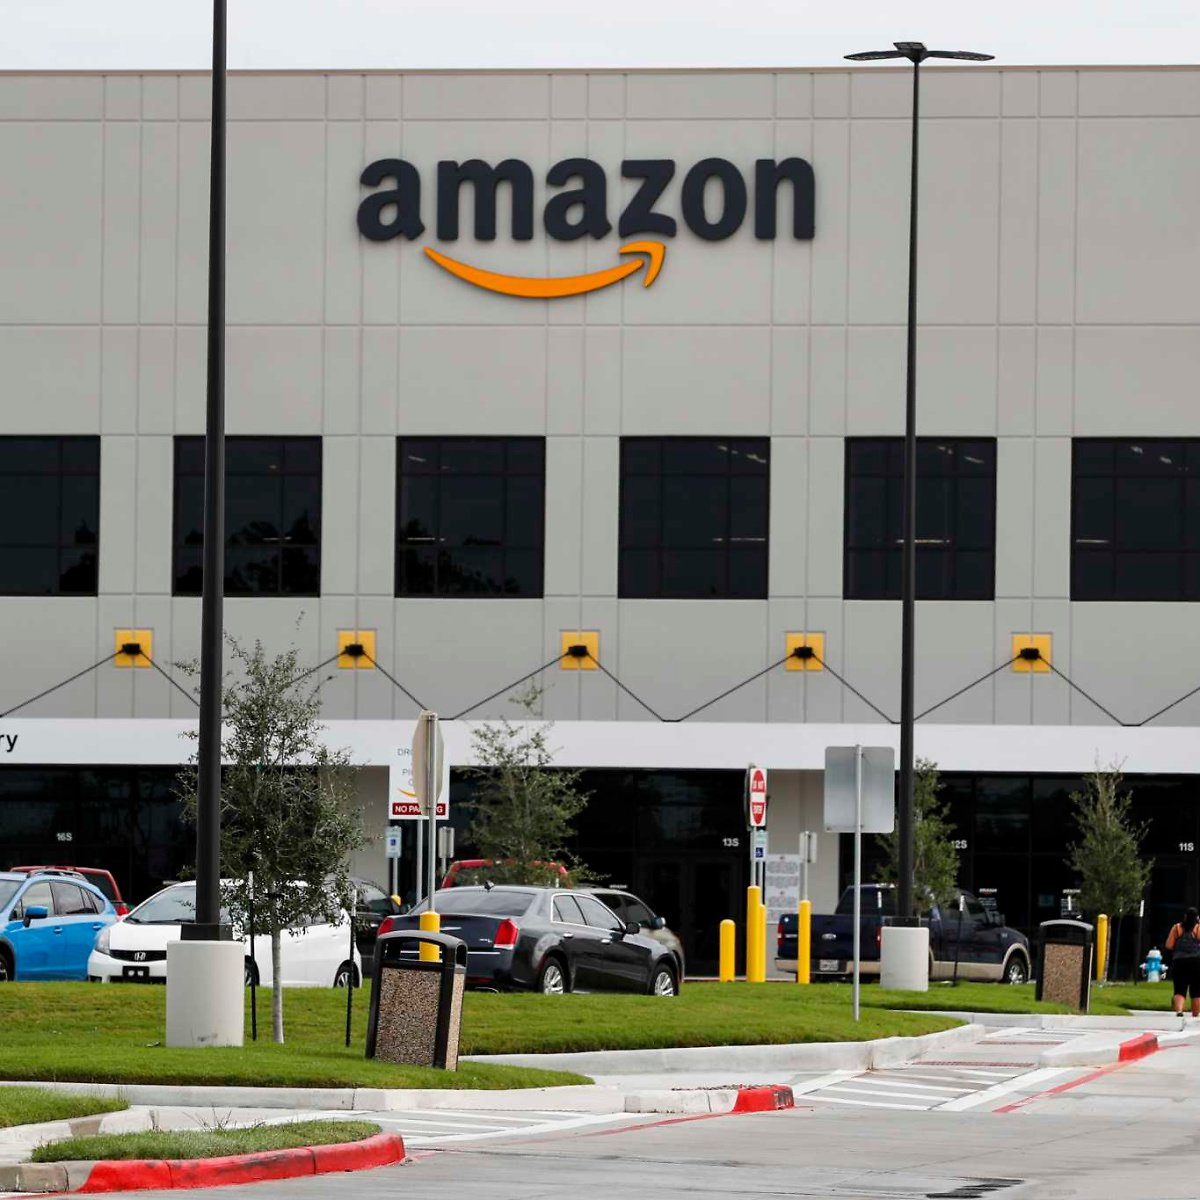 Amazon Is Launching On-site Covid-19 Vaccinations At Some Warehouses